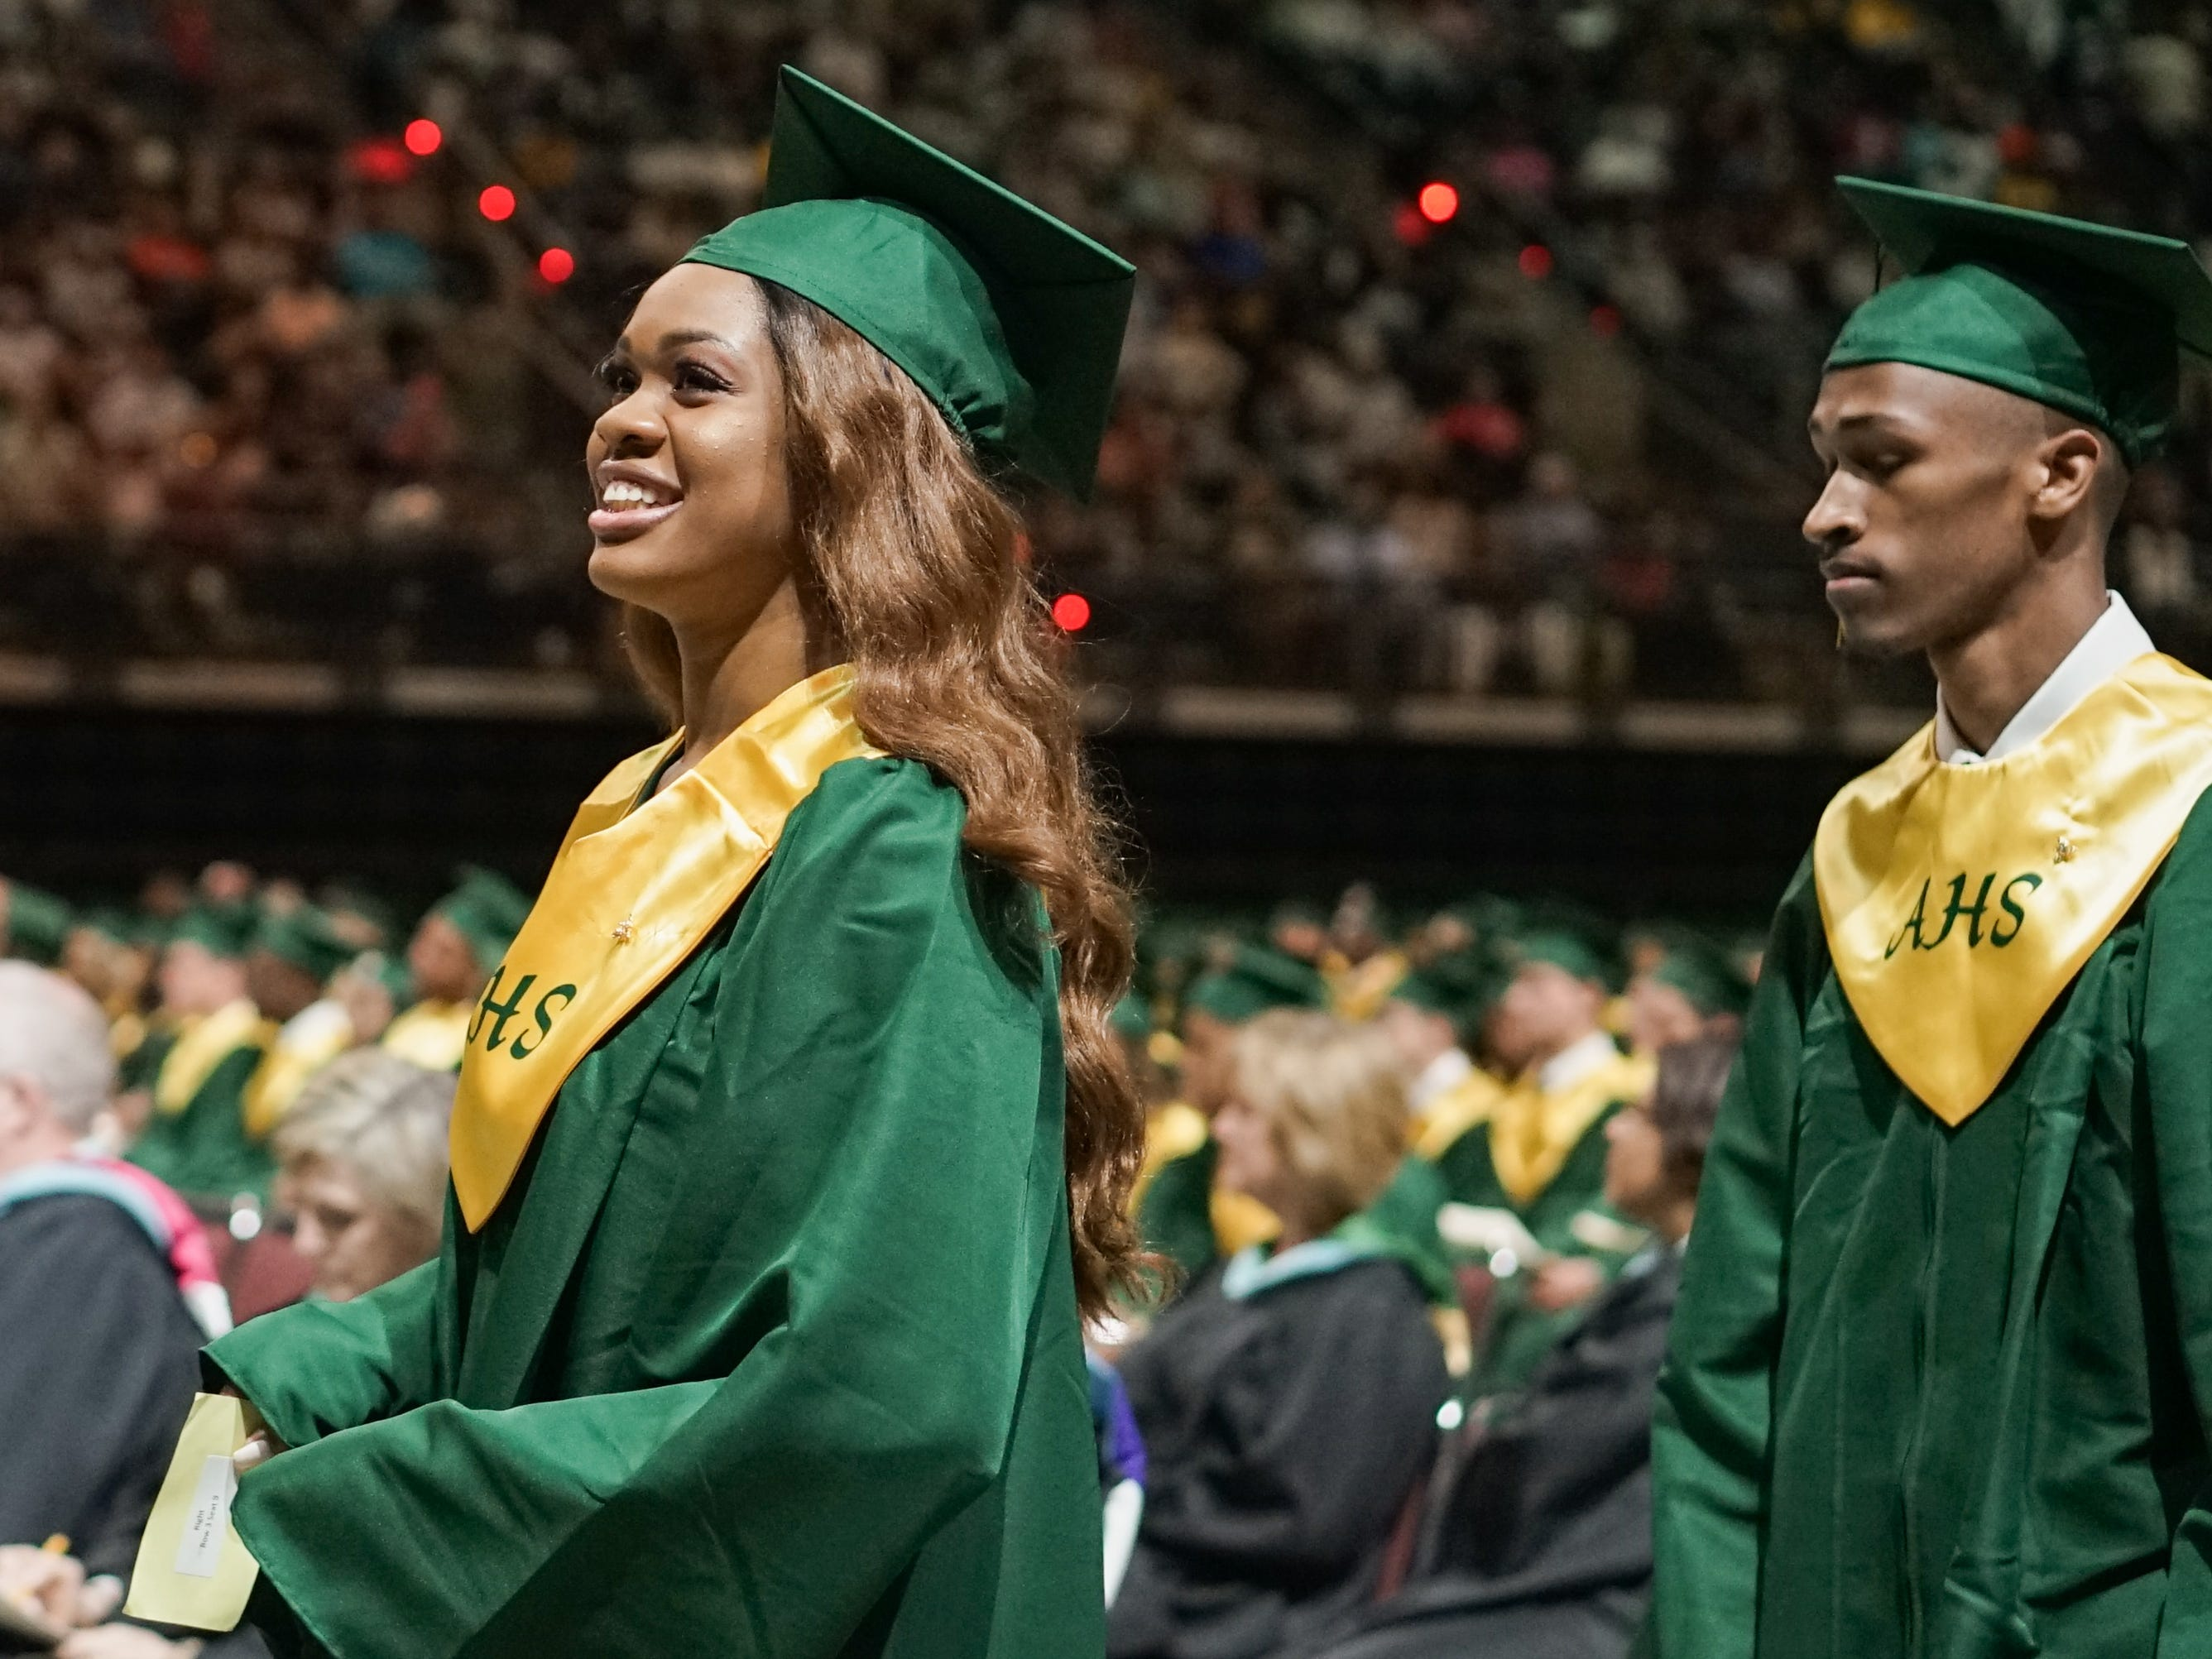 Acadiana High School holds its graduation ceremony at the Cajundome in Lafayette.